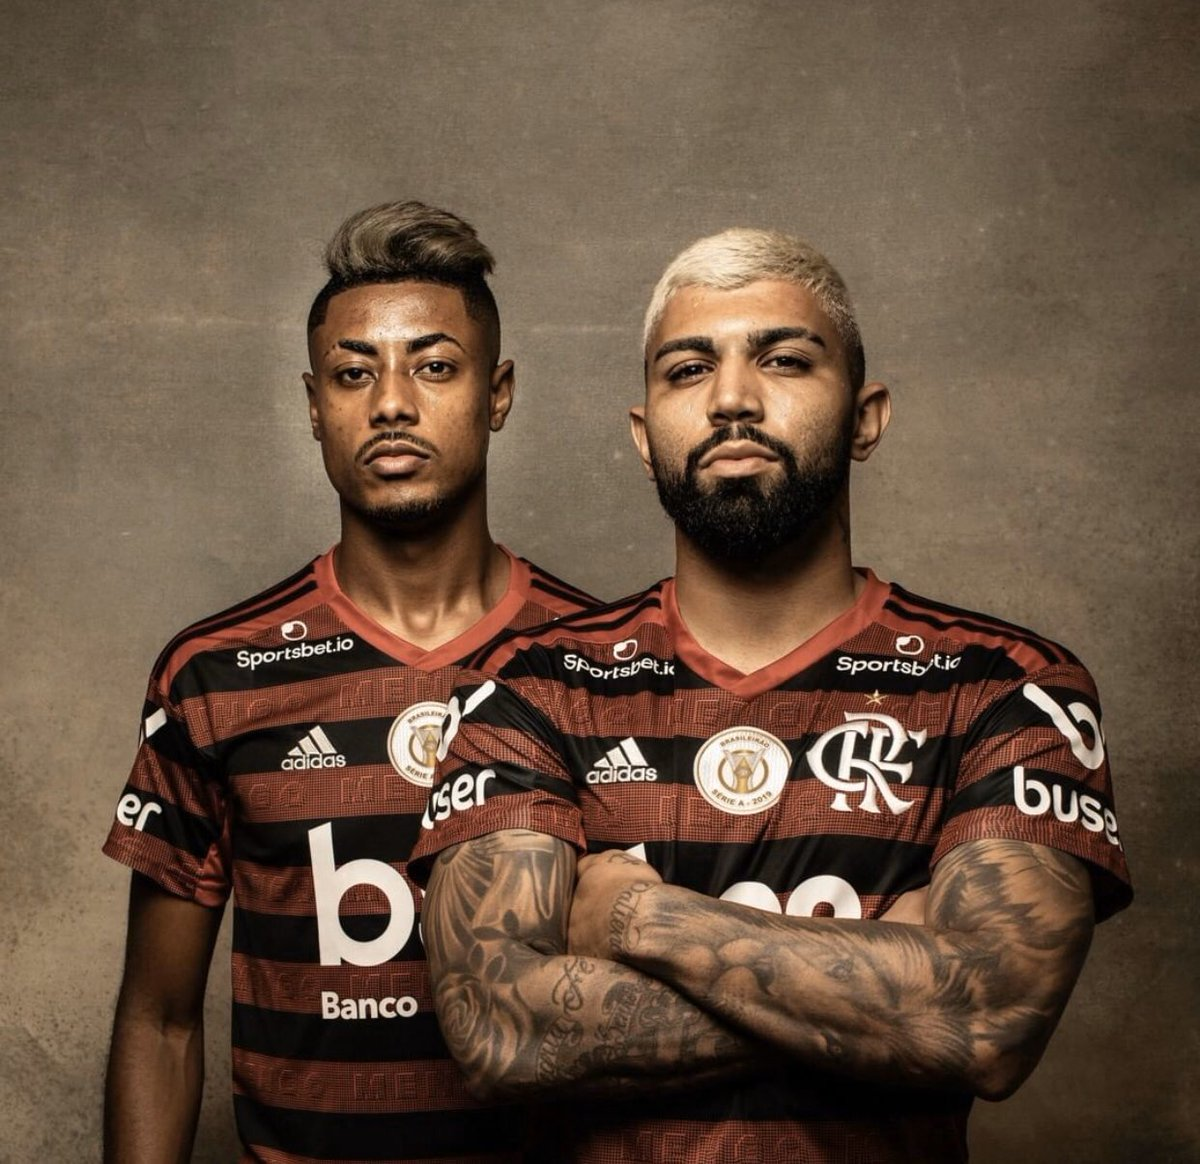 Gabigol provided Bruno Henrique with two assists today.   He now has 11 goals + 8 assists in 12 games this season  <br>http://pic.twitter.com/D8j1zT6kfl